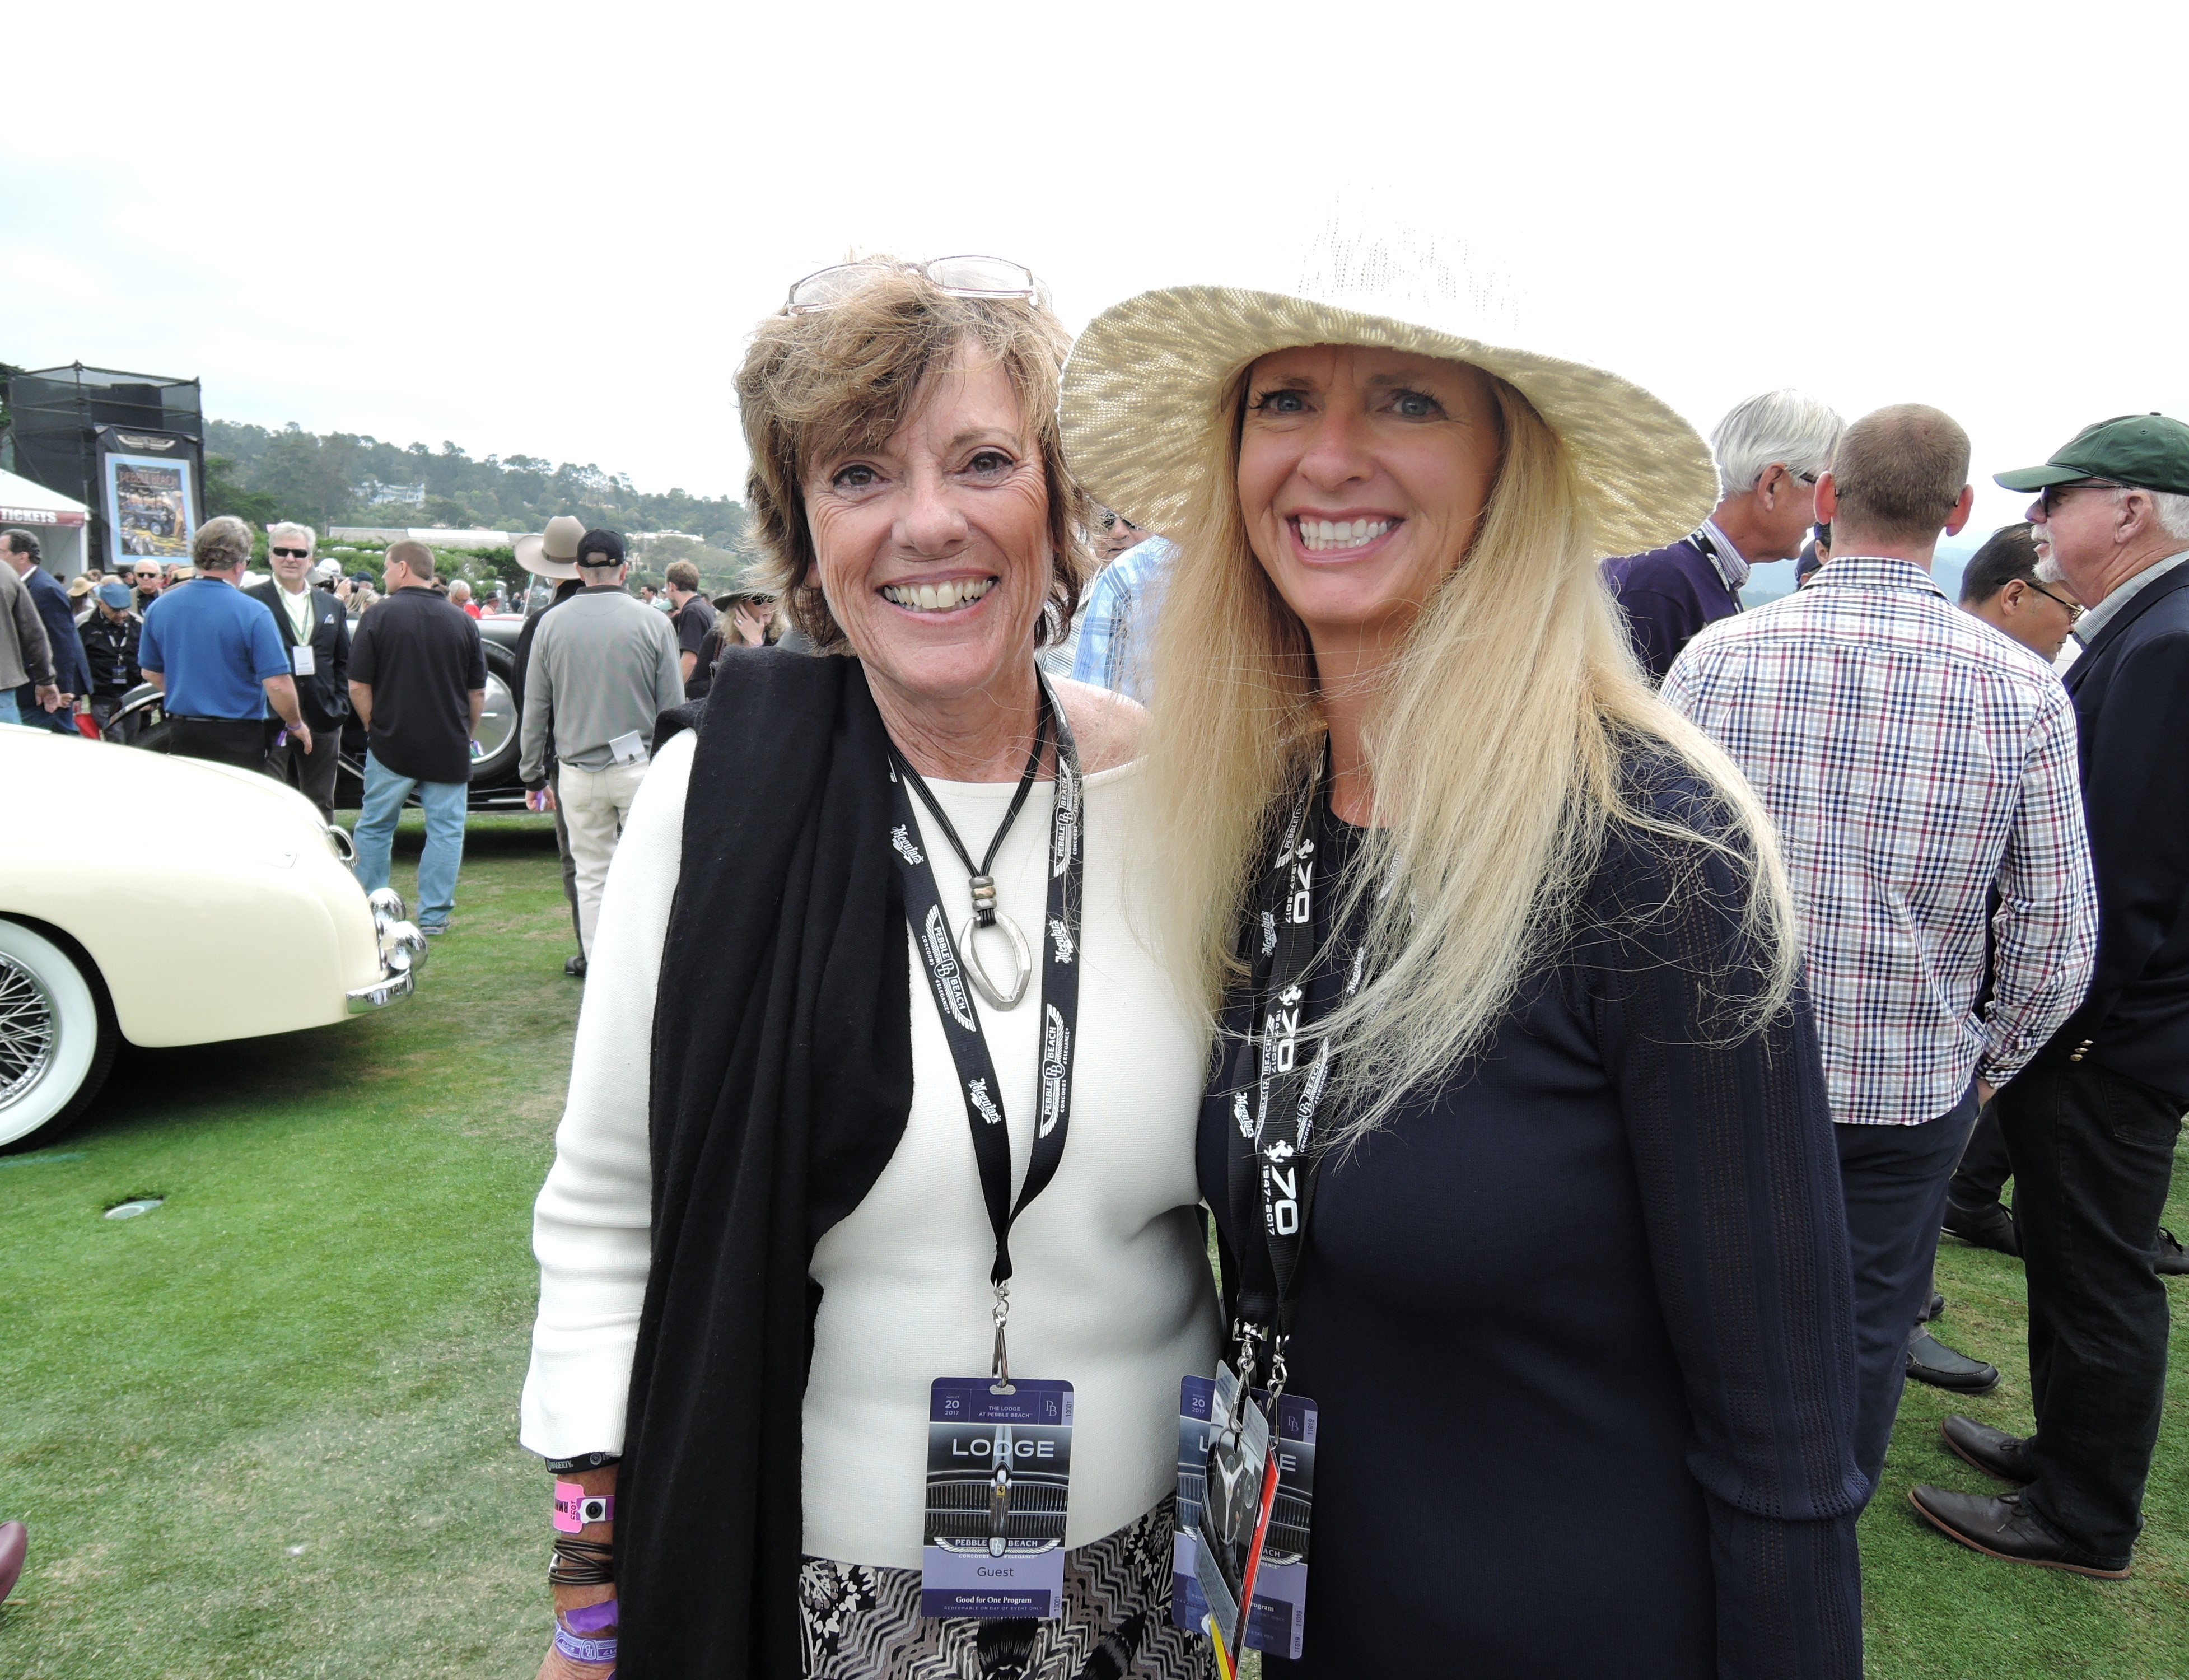 Lyn St. James and The Auto Blonde - Pebble Beach Concours d'Elegance 2017